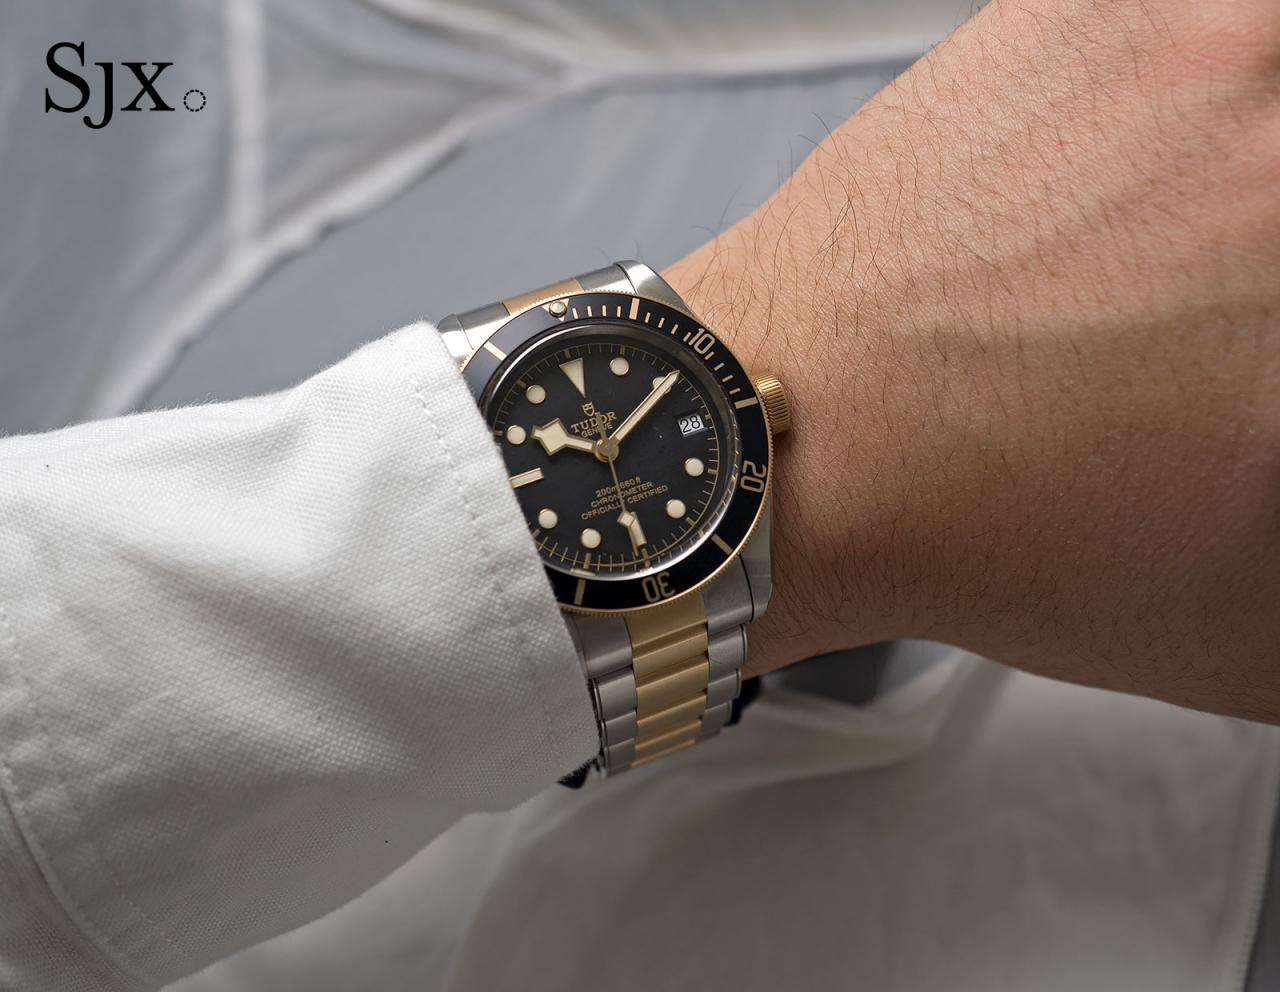 Tudor Black Bay S&G 79733N-11